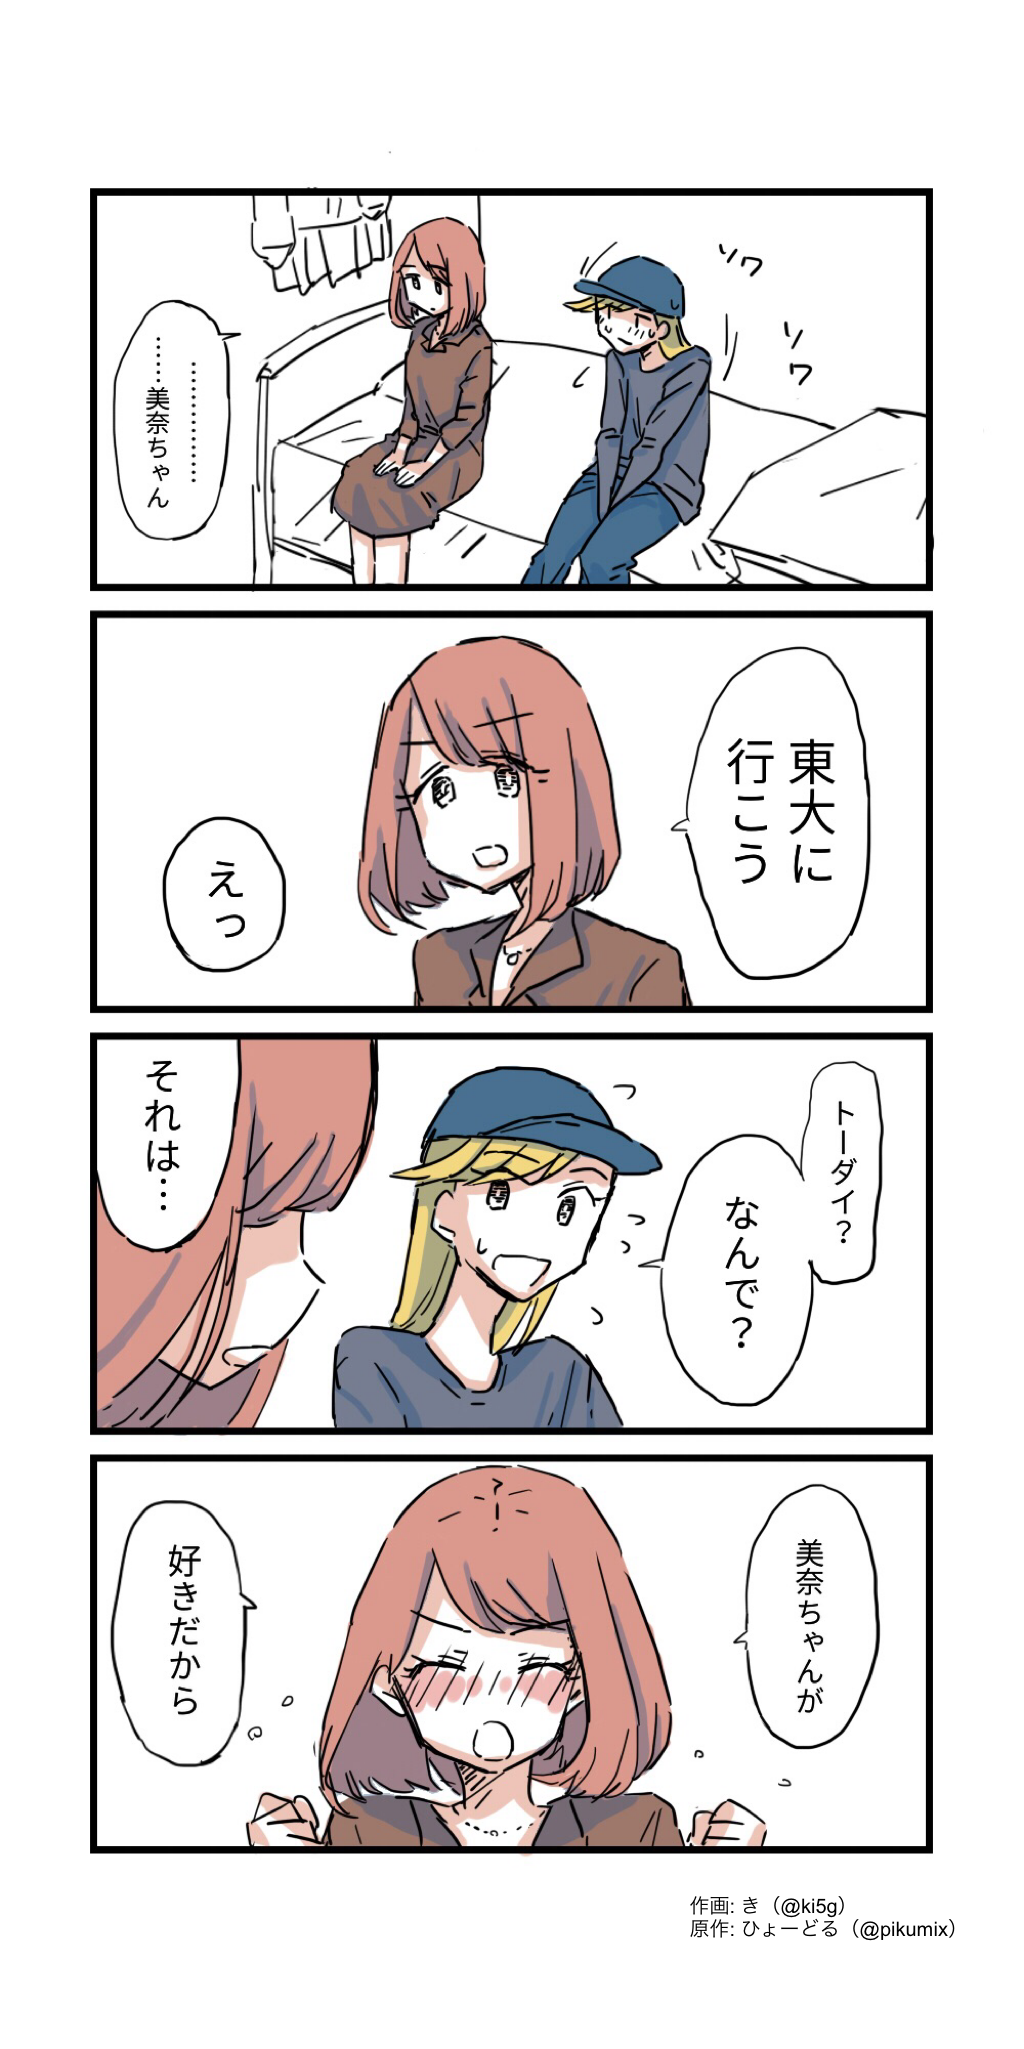 20190609114822b22.png